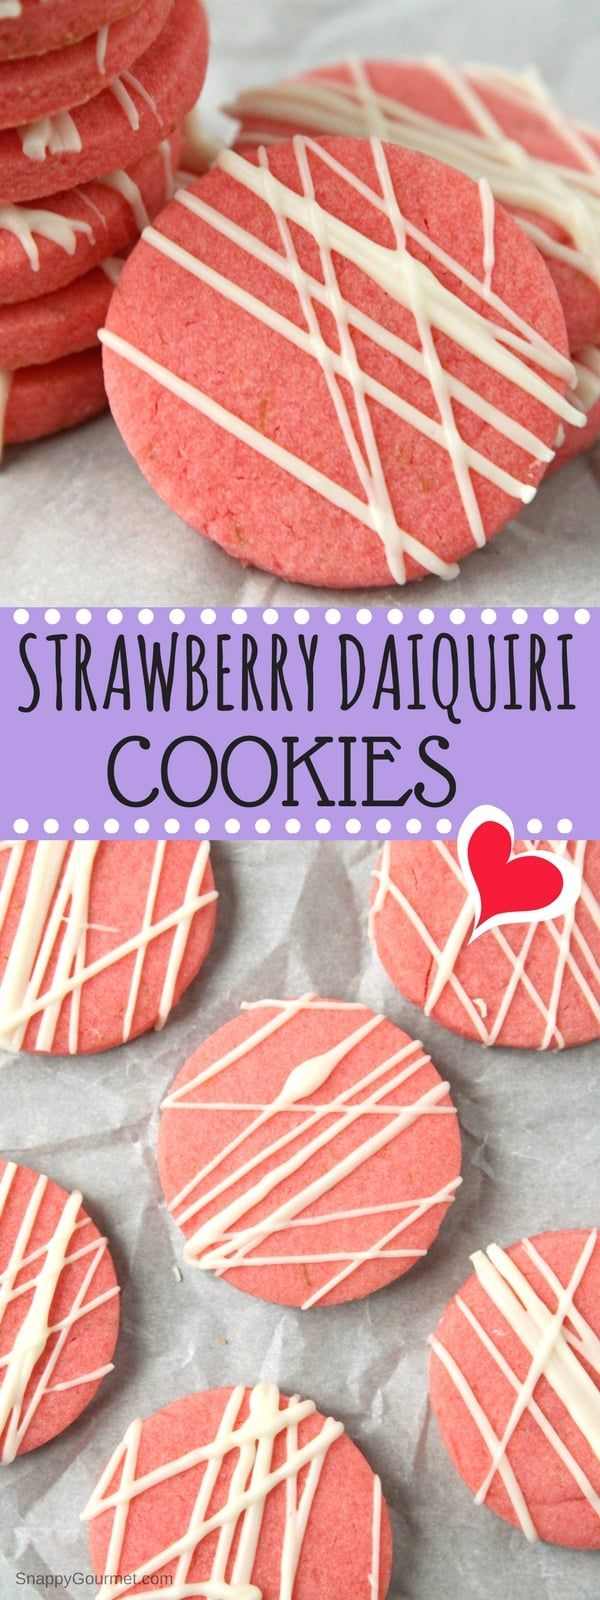 Strawberry Daiquiri Cookies -- easy strawberry sugar cookie recipe w/ strawberry, lime & rum, great Christmas cookie idea! [] SnappyGourmet.com